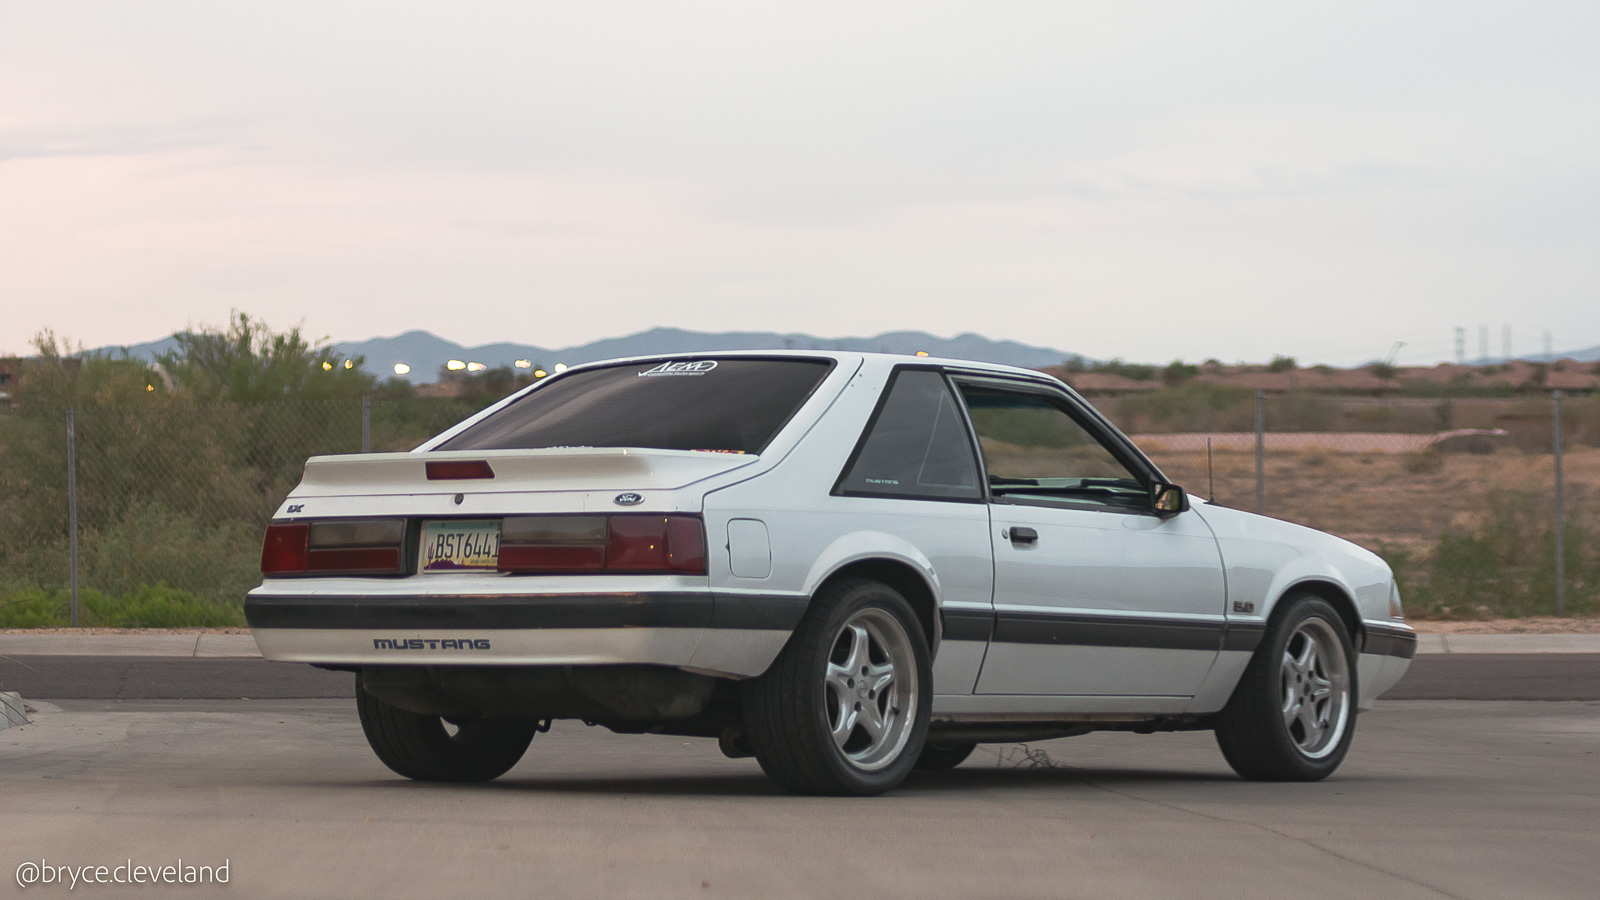 Whether you love or hate the style of the fox body youll probably agree that its interesting but it doesnt really resemble mustangs of the past